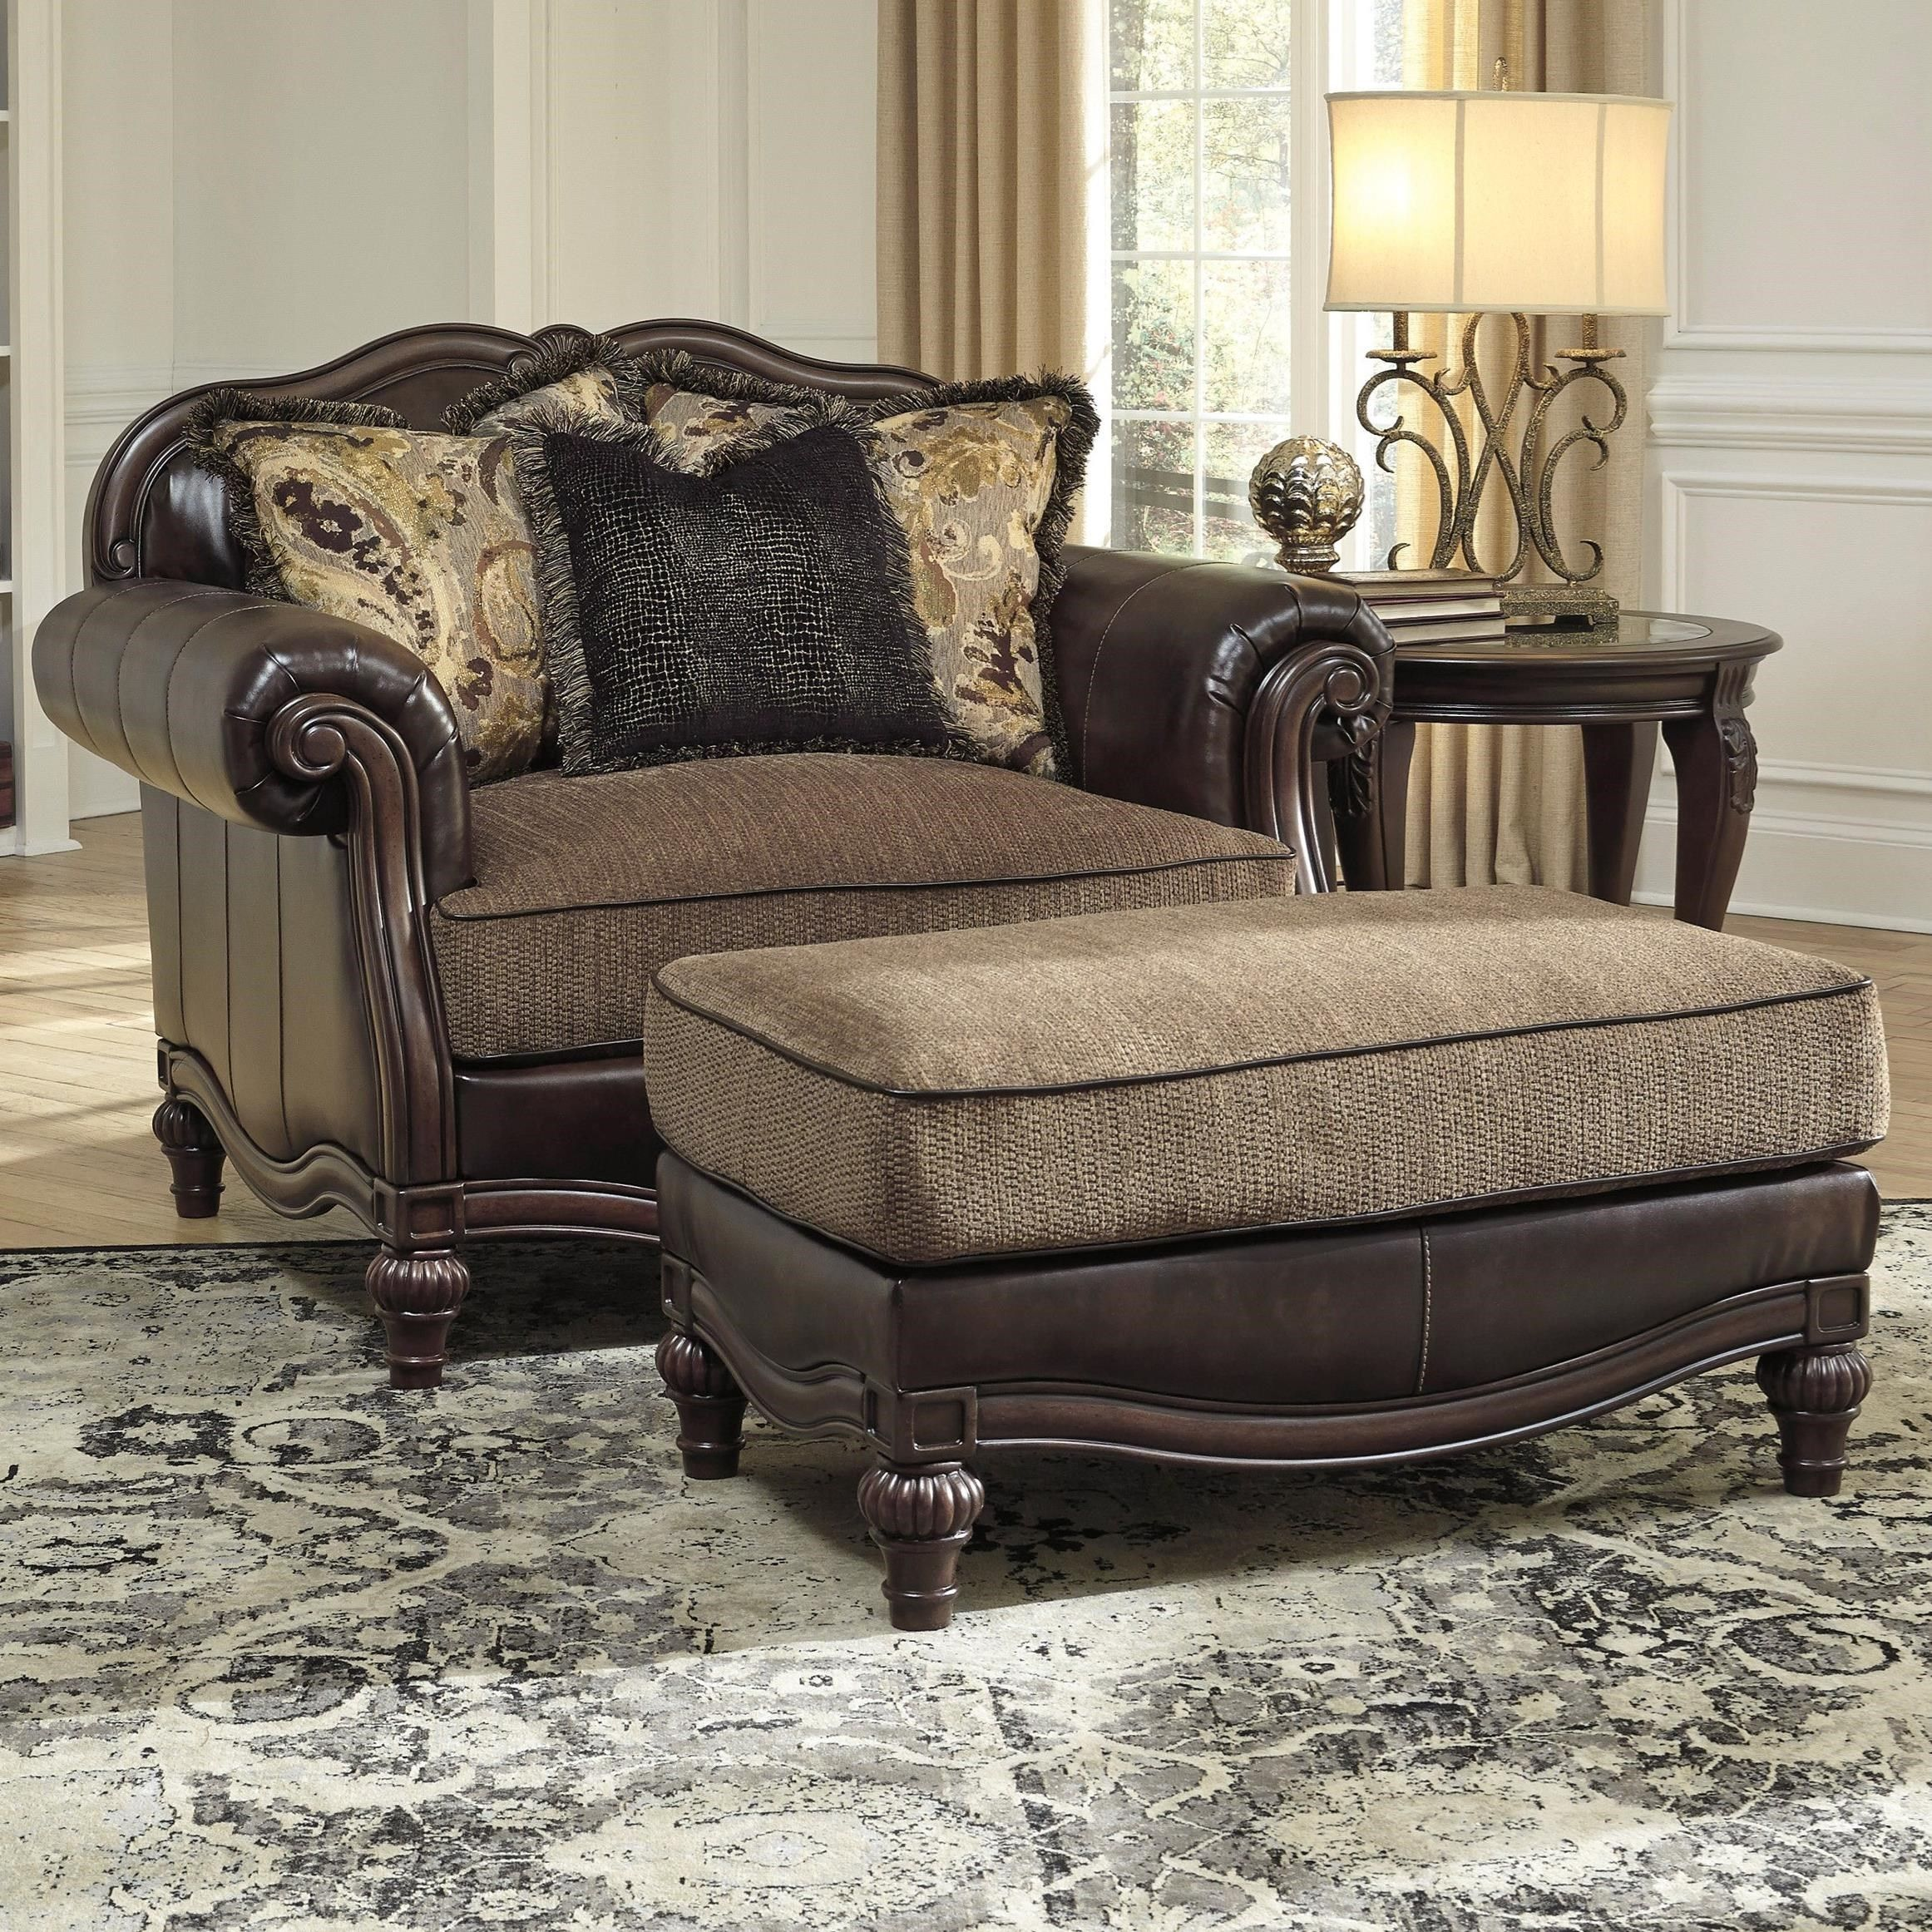 Best Traditional Chair And A Half Ottoman Vintage Chairs 400 x 300